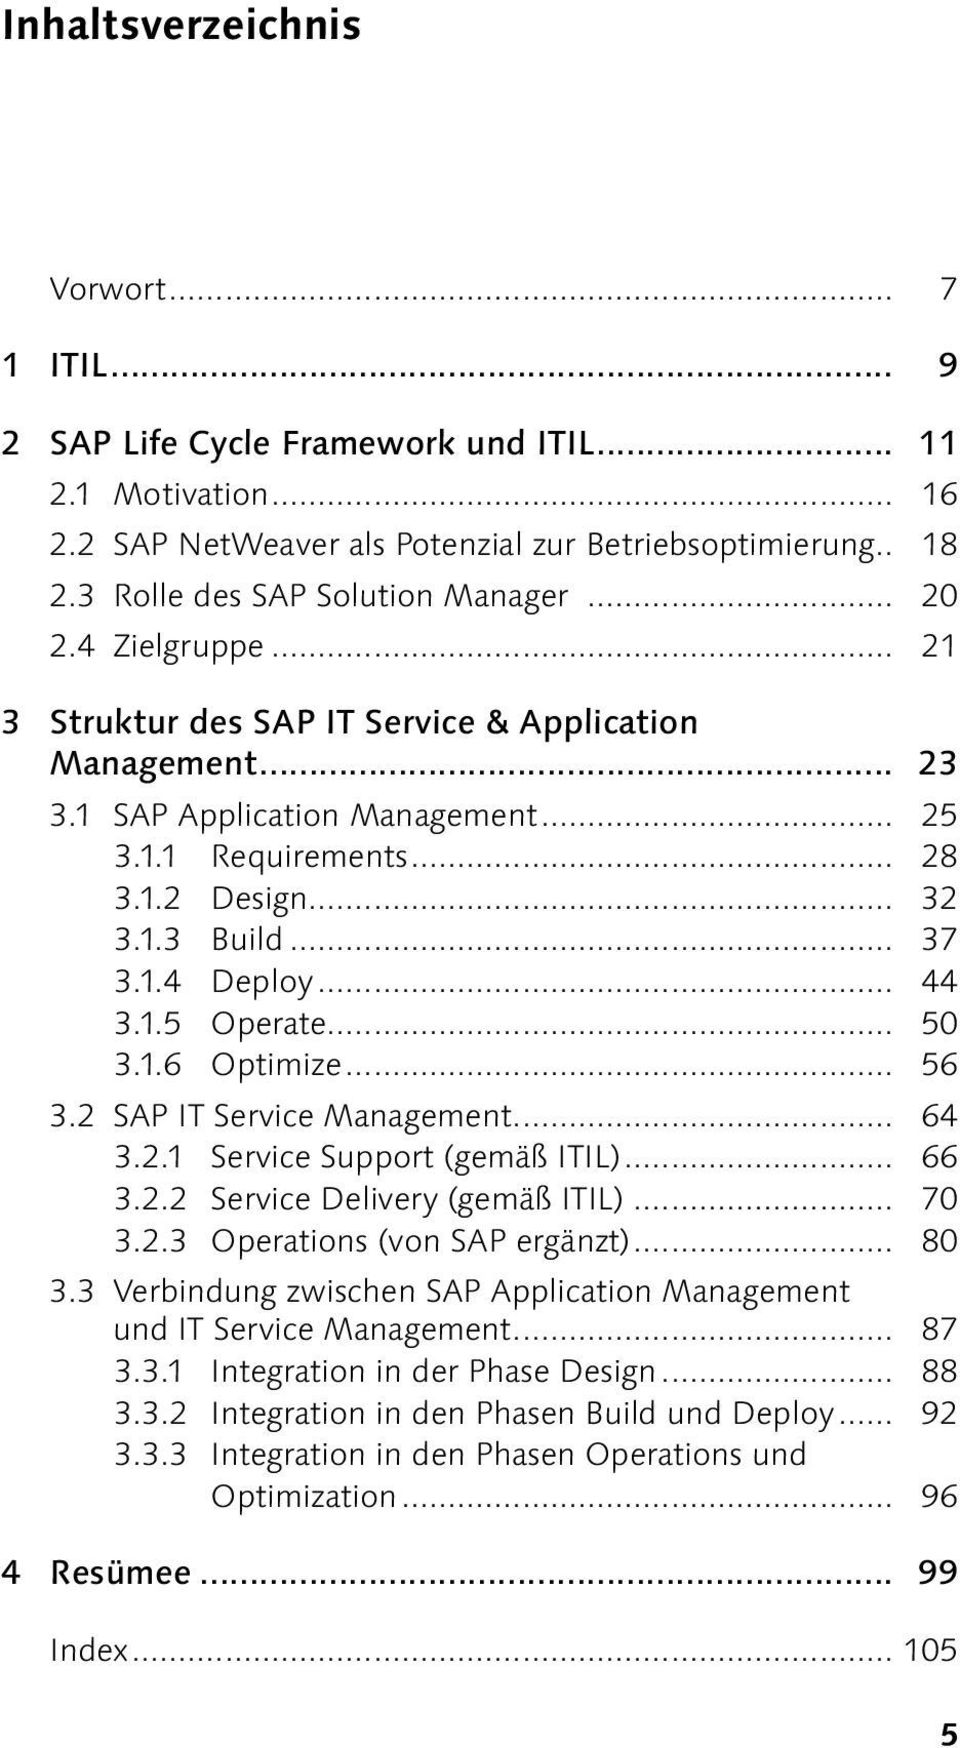 1.4 Deploy... 44 3.1.5 Operate... 50 3.1.6 Optimize... 56 3.2 SAP IT Service... 64 3.2.1 Service Support (gemäß ITIL)... 66 3.2.2 Service Delivery (gemäß ITIL)... 70 3.2.3 Operations (von SAP ergänzt).